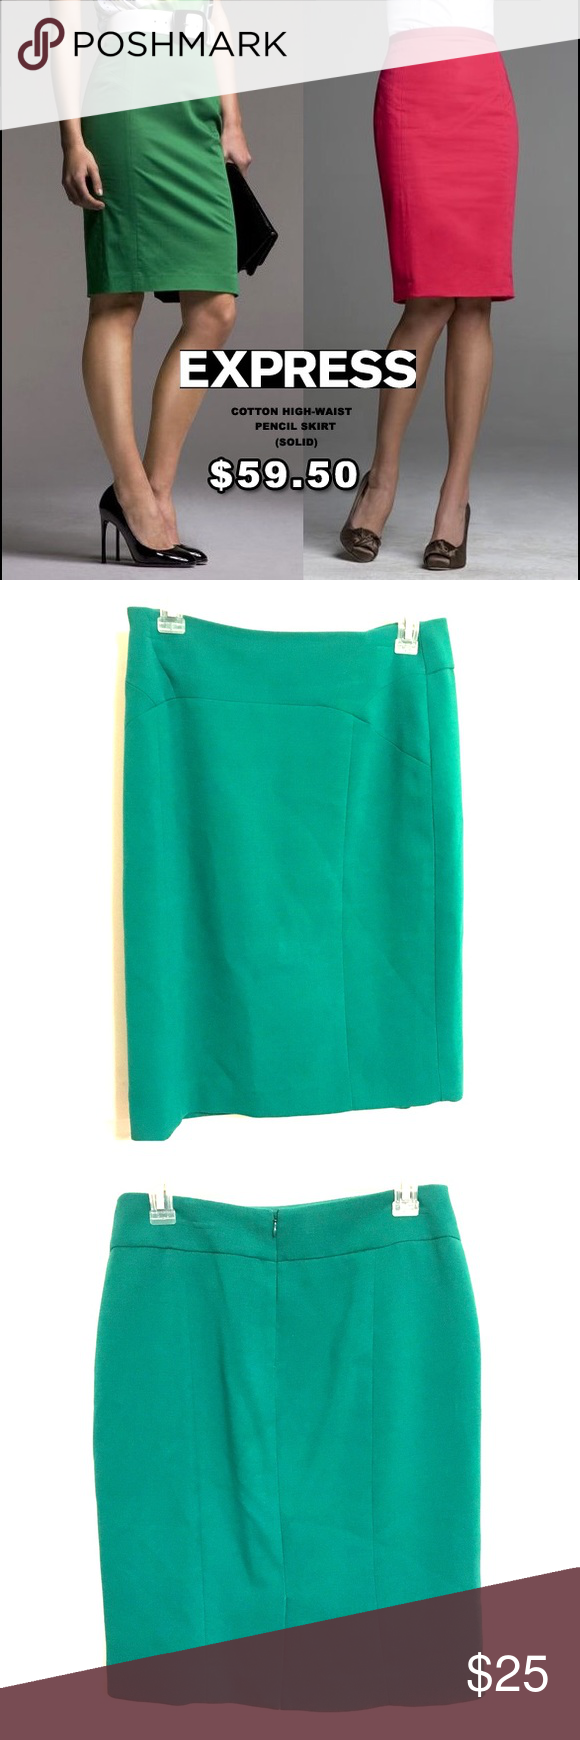 Green Pencil Skirt Pencil Skirt. Worn only a few times. Great condition! Express Skirts Pencil